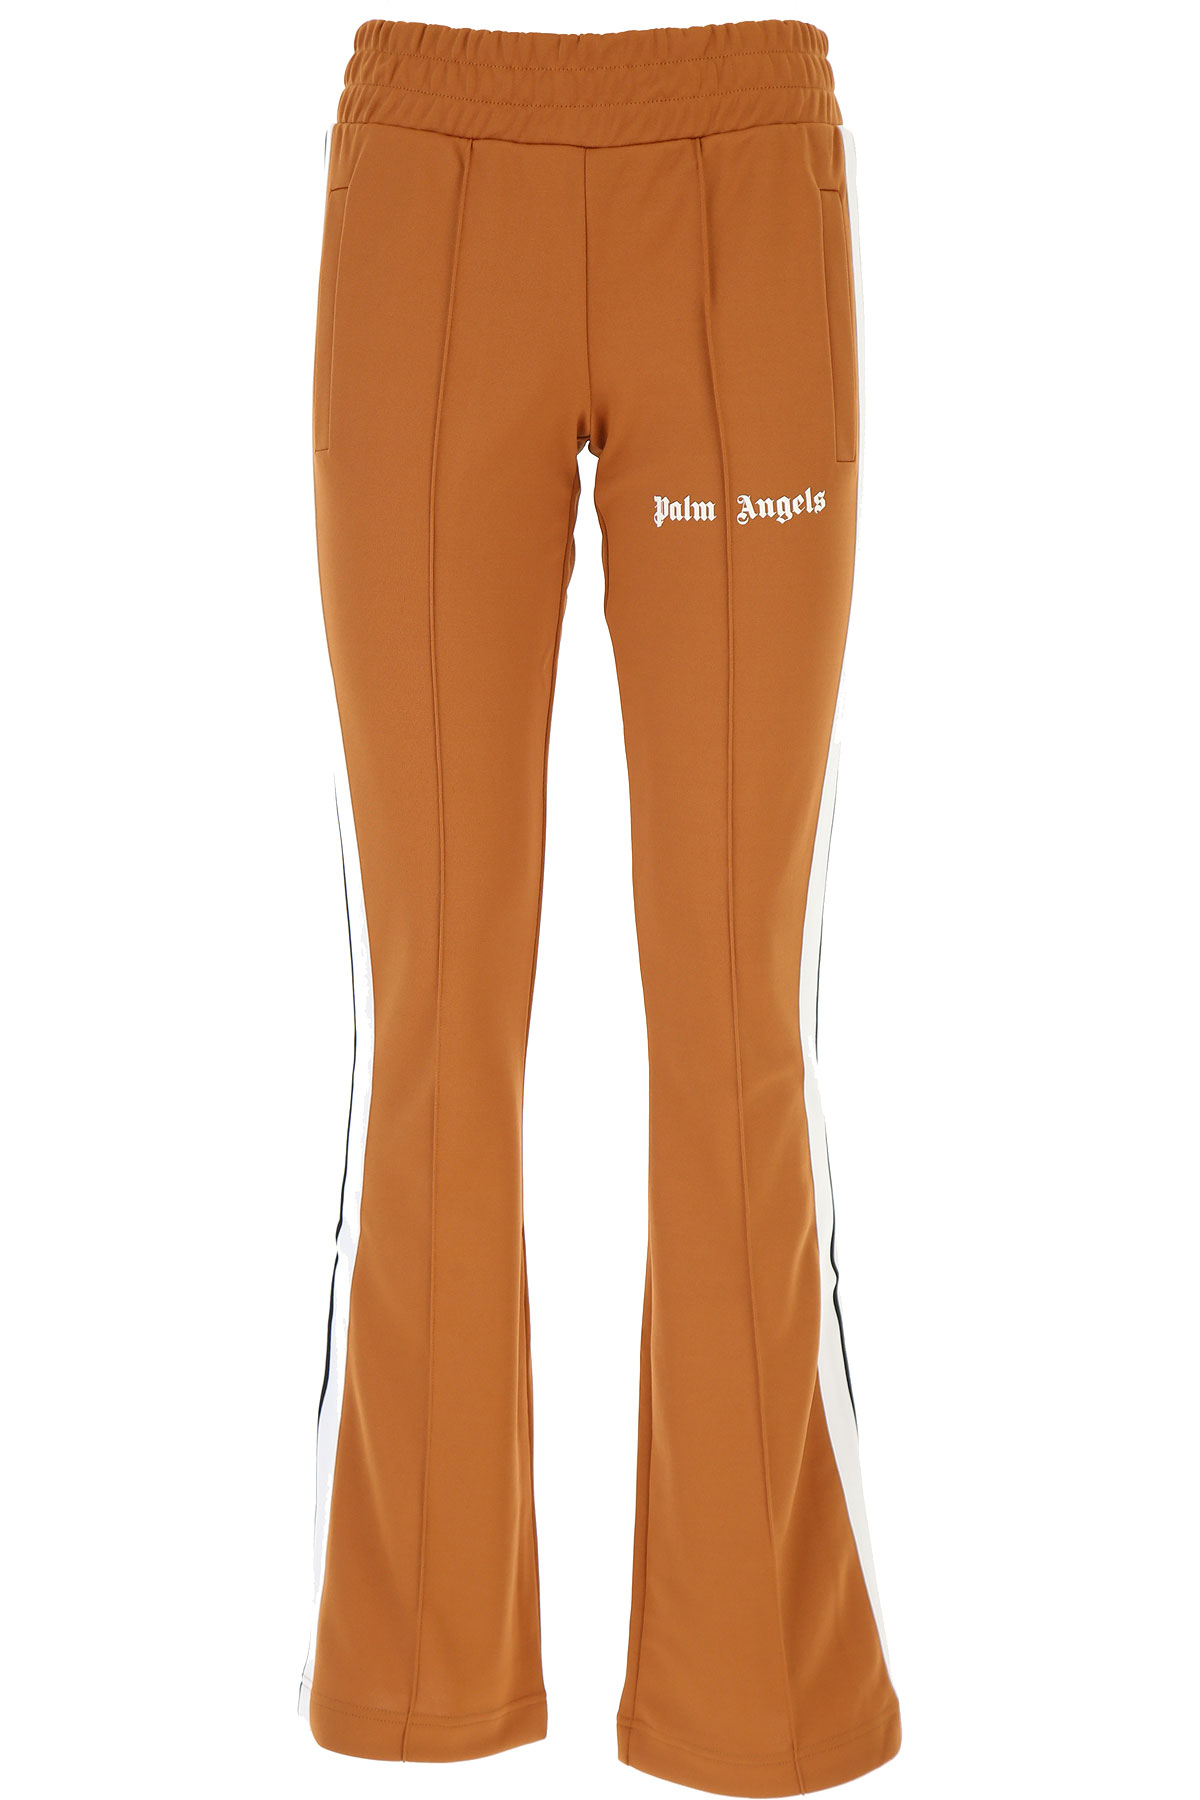 Palm Angels Sweatpants On Sale, Brown, polyester, 2019, 26 4